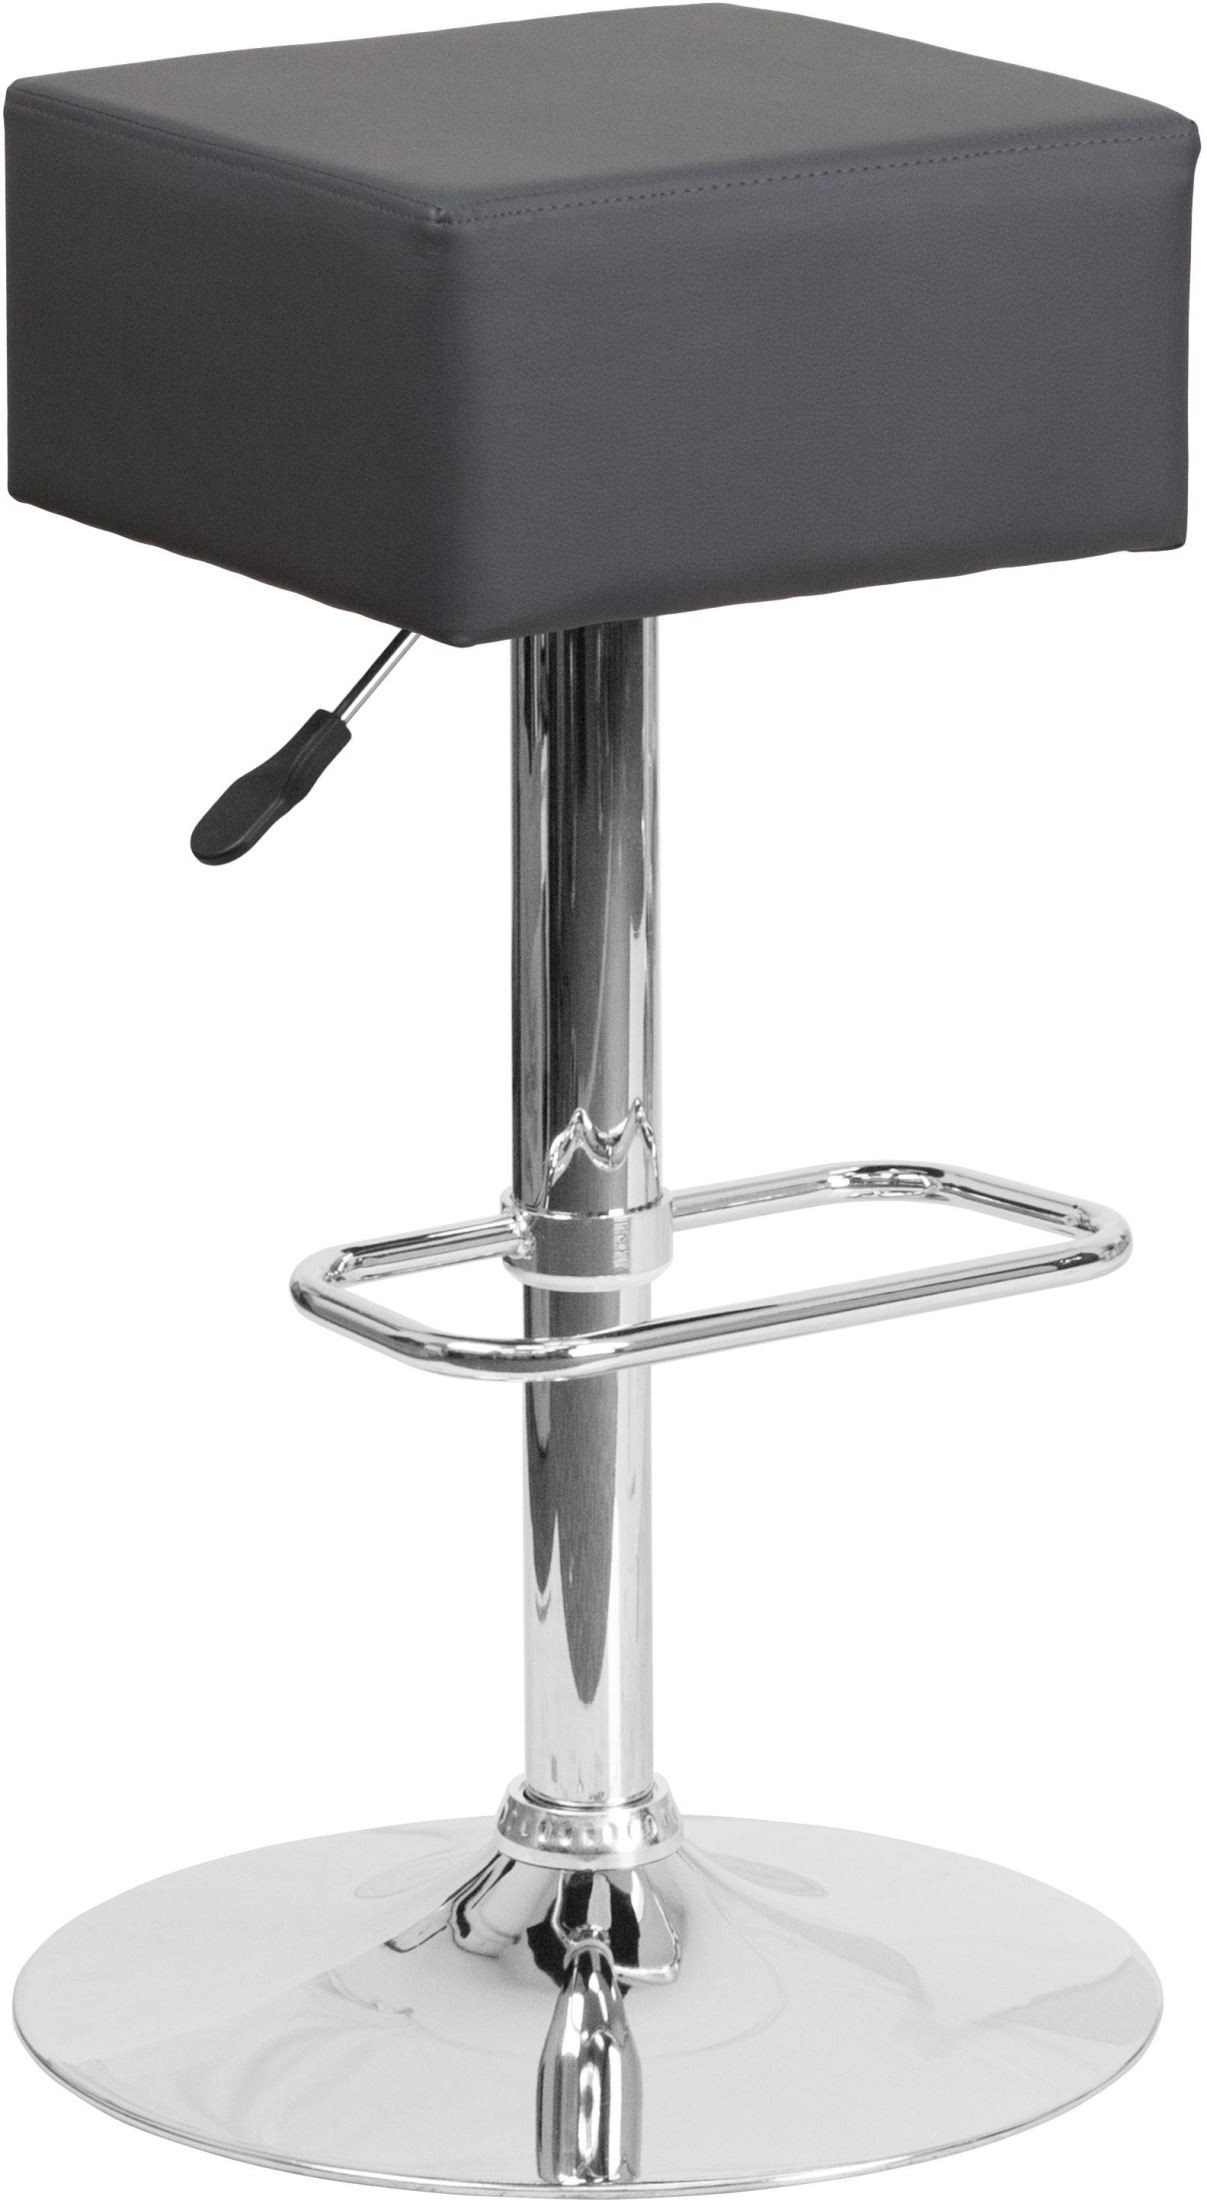 Backless Gray Vinyl Adjustable Height Bar Stool from  : ch 82058 4 gy gg from colemanfurniture.com size 1207 x 2200 jpeg 216kB